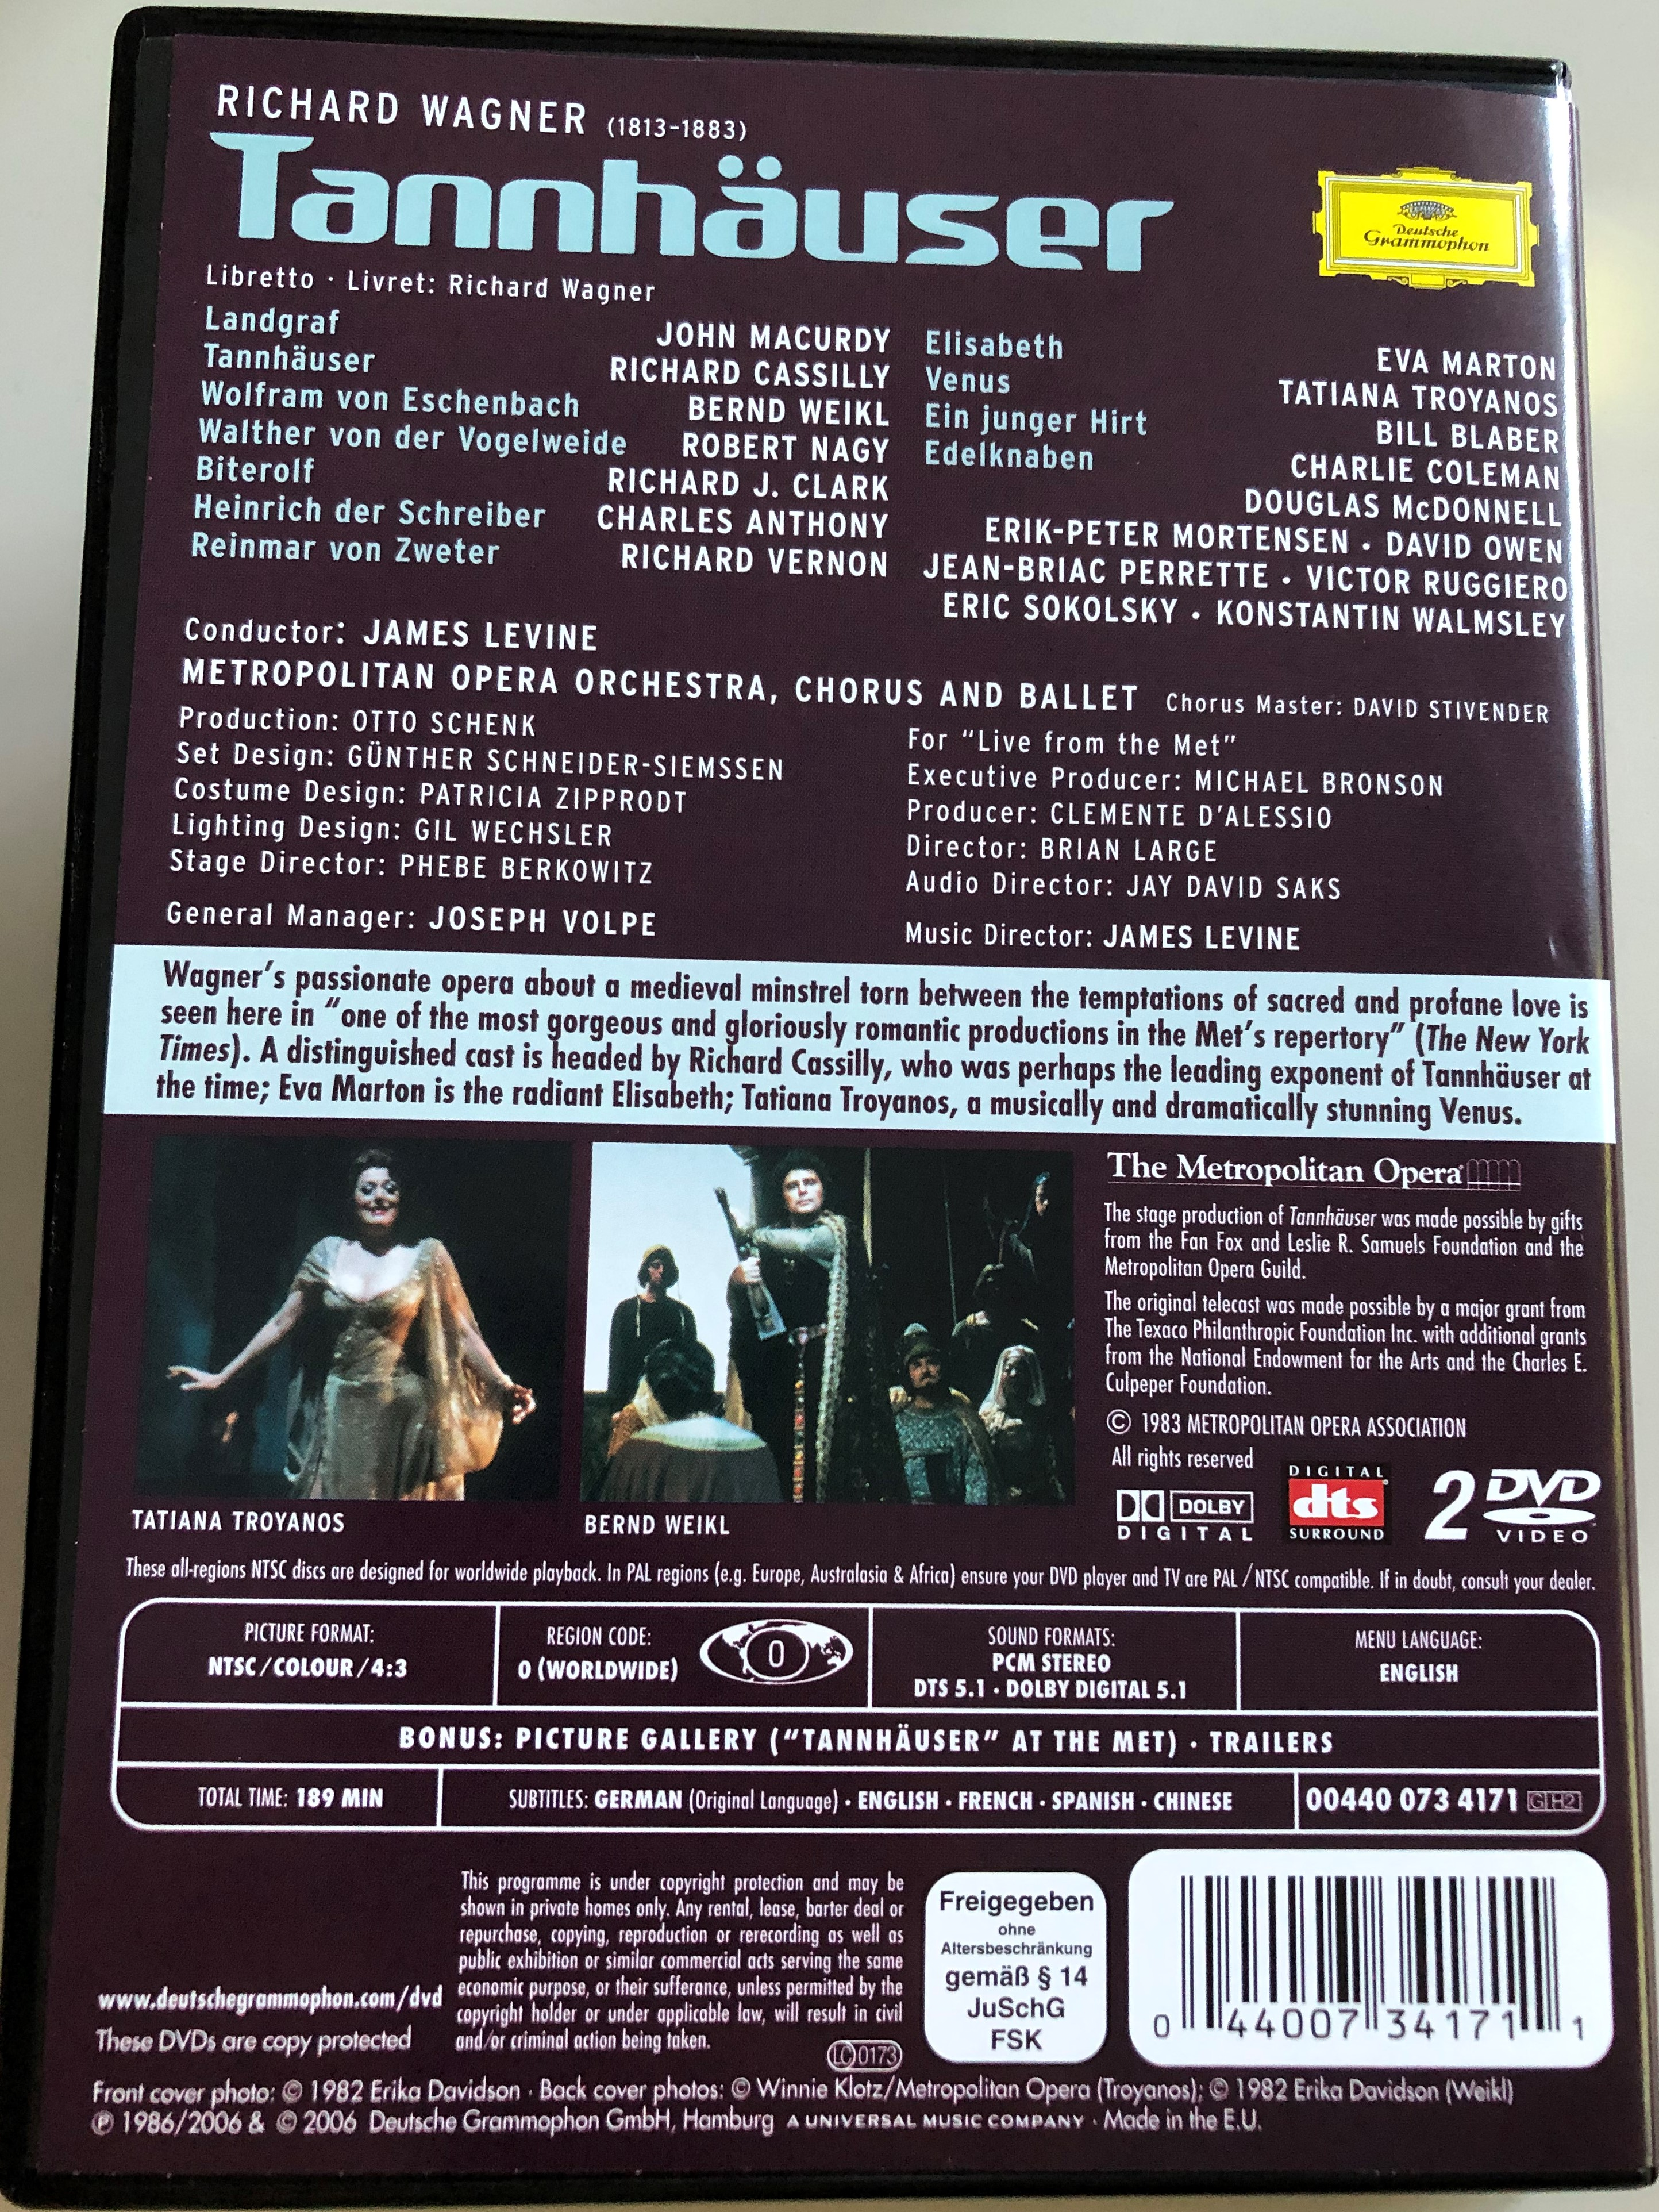 richard-wagner-tannh-user-2-dvd-2006-the-metropolitan-opera-orchestra-chorus-and-ballet-conducted-by-james-levine-richard-cassilly-eva-marton-tatiana-troyanos-bernd-weikl-john-macurdy-directed-for-video-by-bria-6619237-.jpg